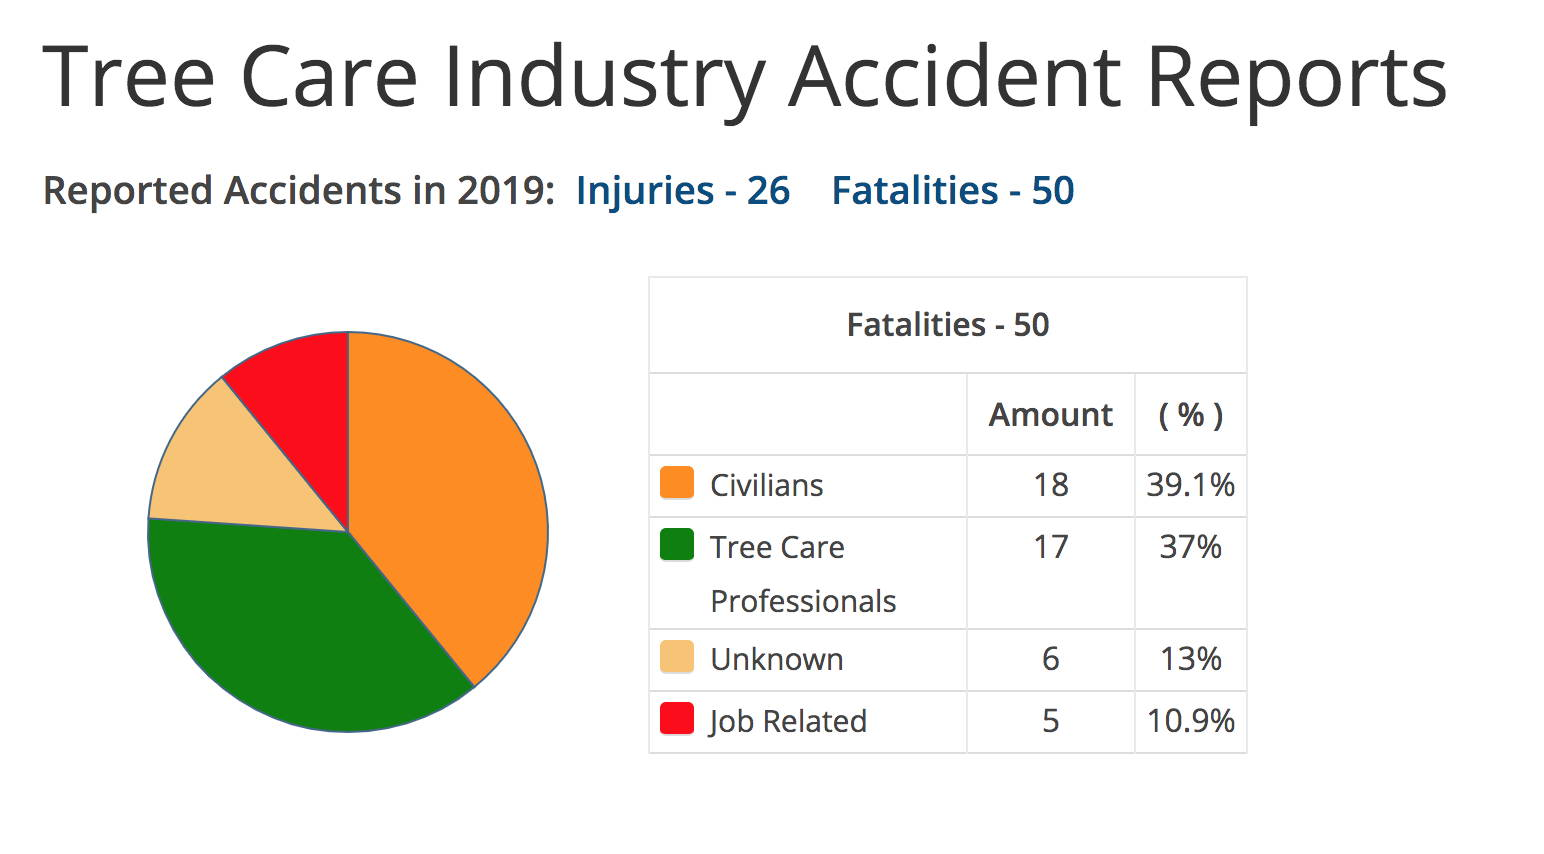 Tree Care Industry Accident Reports